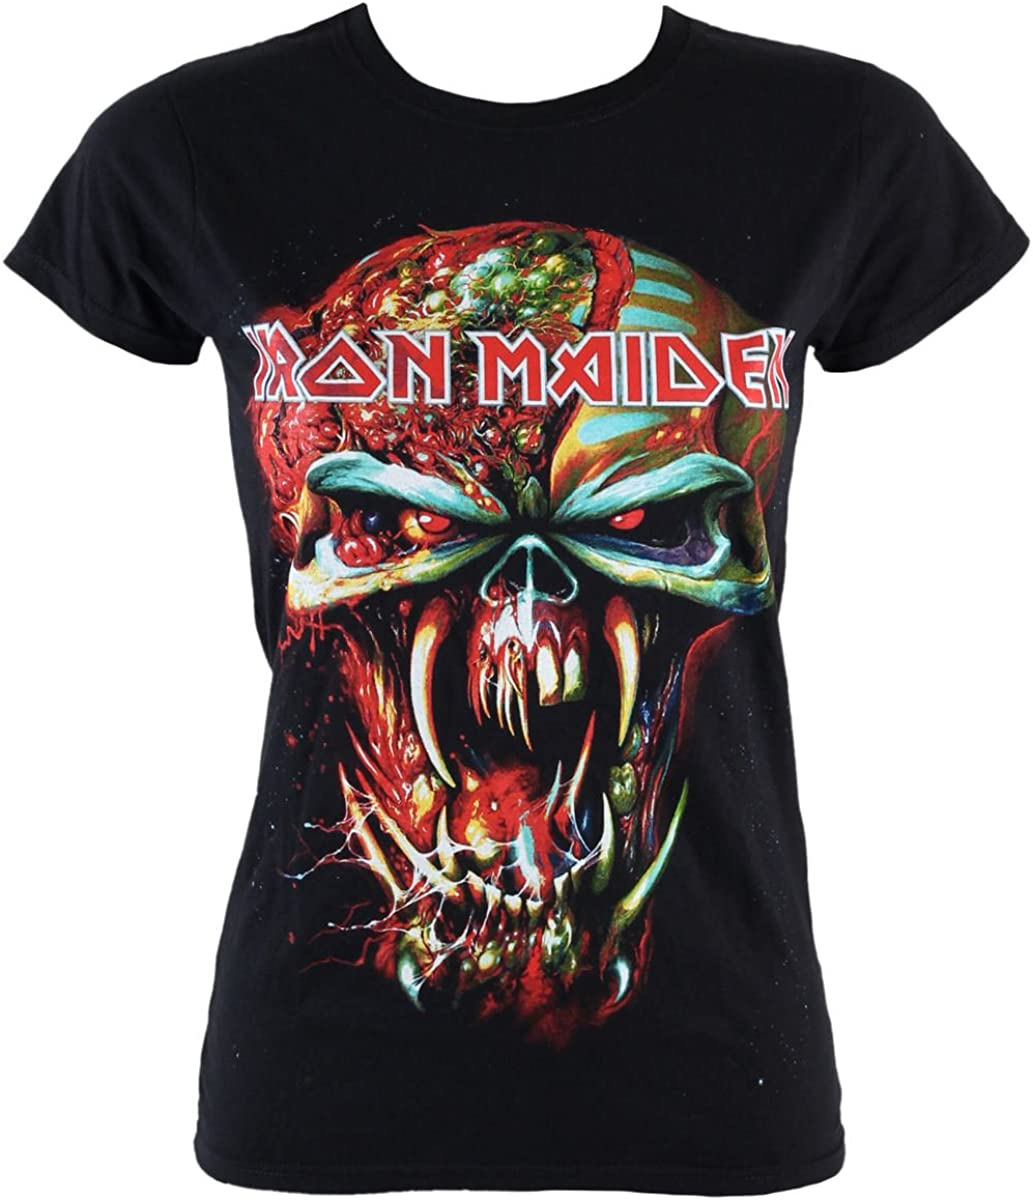 Rock Off - Camiseta de Metal para Mujer Iron Maiden – Final Frontier Eddie IMTEE18LB - Negro - Medium: Amazon.es: Ropa y accesorios